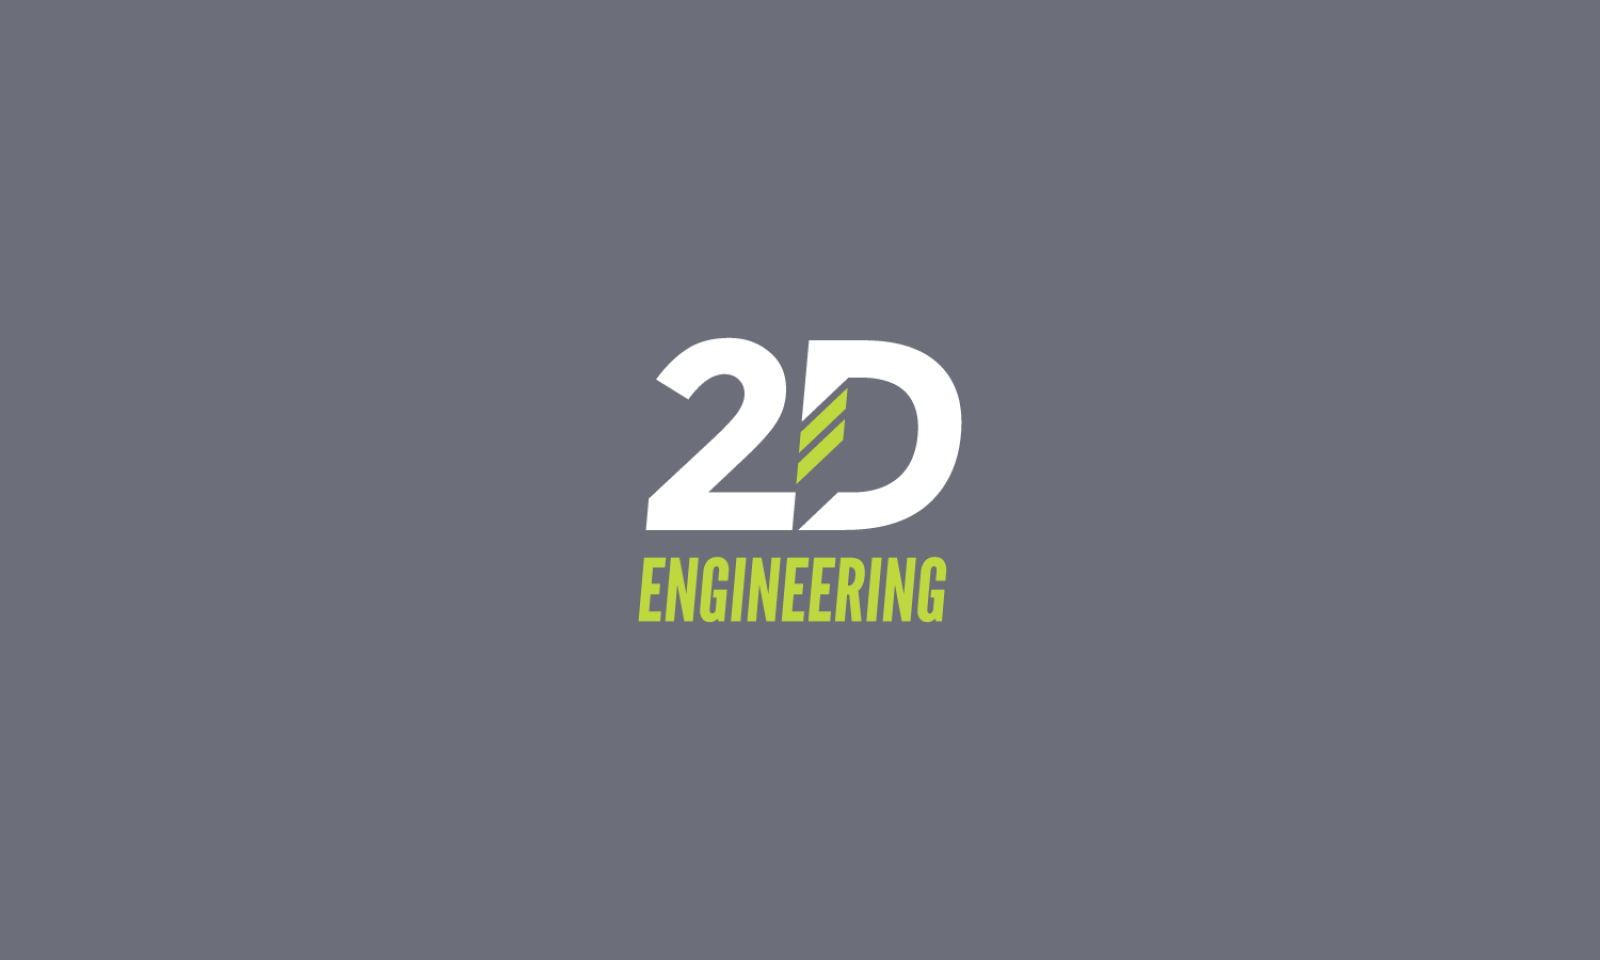 2d-engineering-logo-corporate-identity-agency-graphic-design-canterbury.png